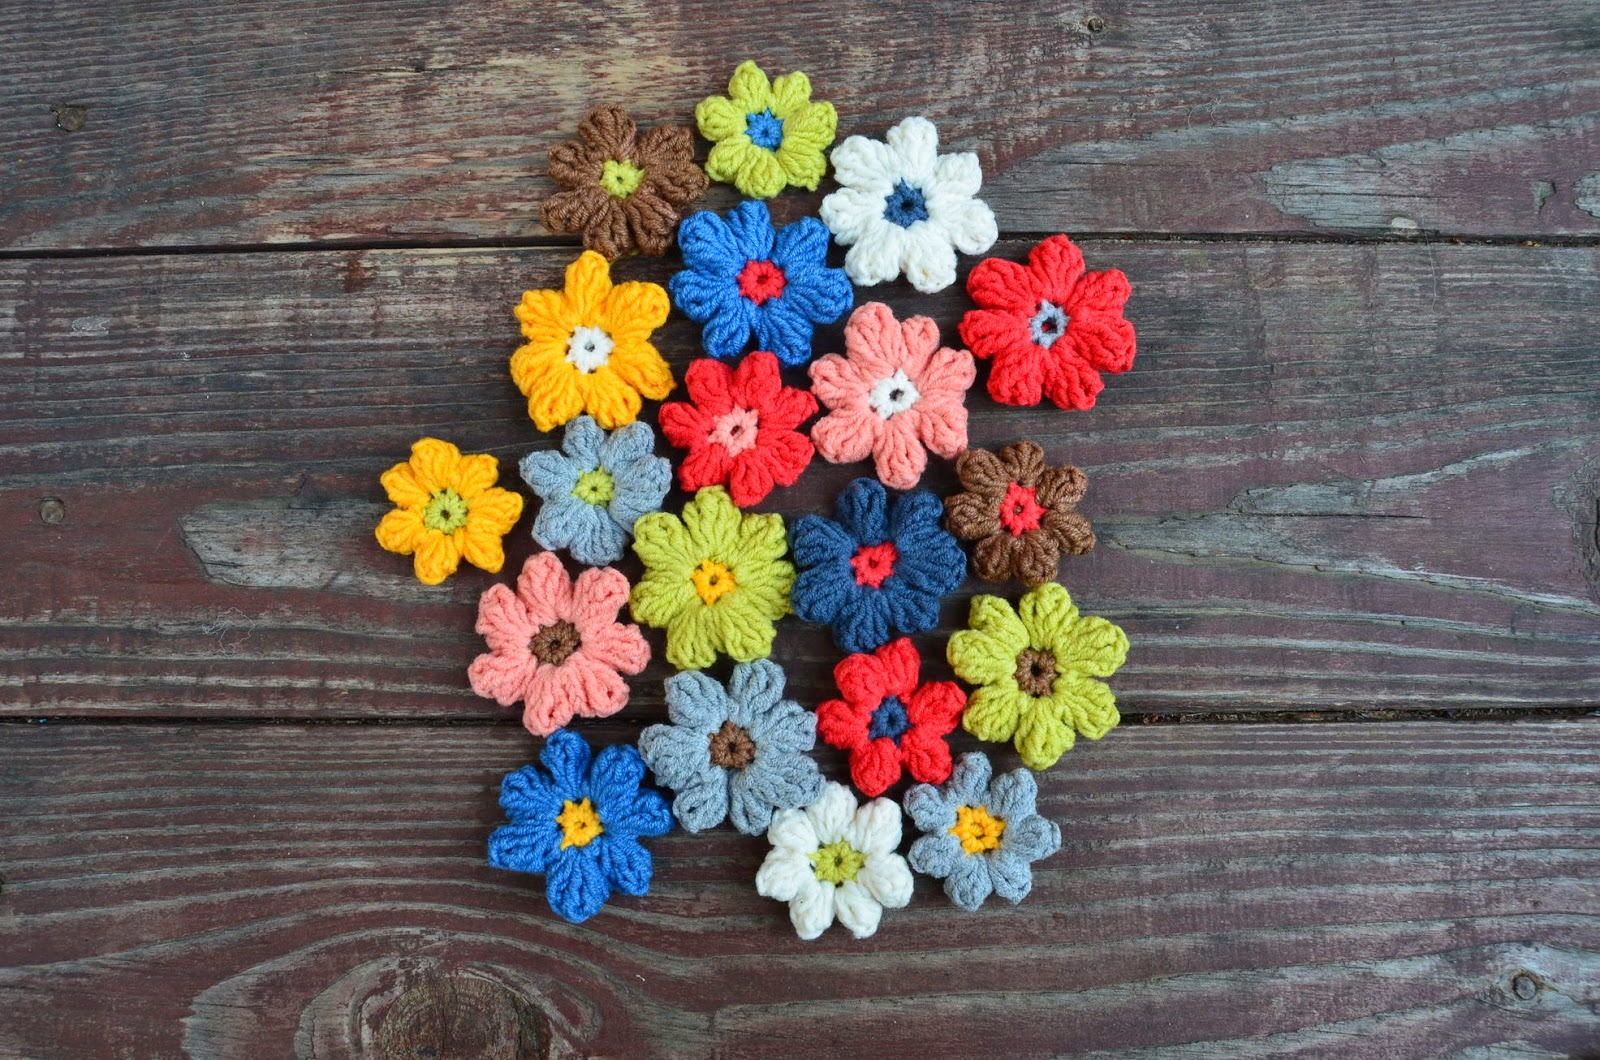 It With Flowers Crochet S Found A Few Patterns To Test Or Not Pattern Lillabjrns World Creating Is Very Nice Thing Do And I Really Enjoy Making Them Can Spend Long Hours My Hook Yarn Camera Then Some More